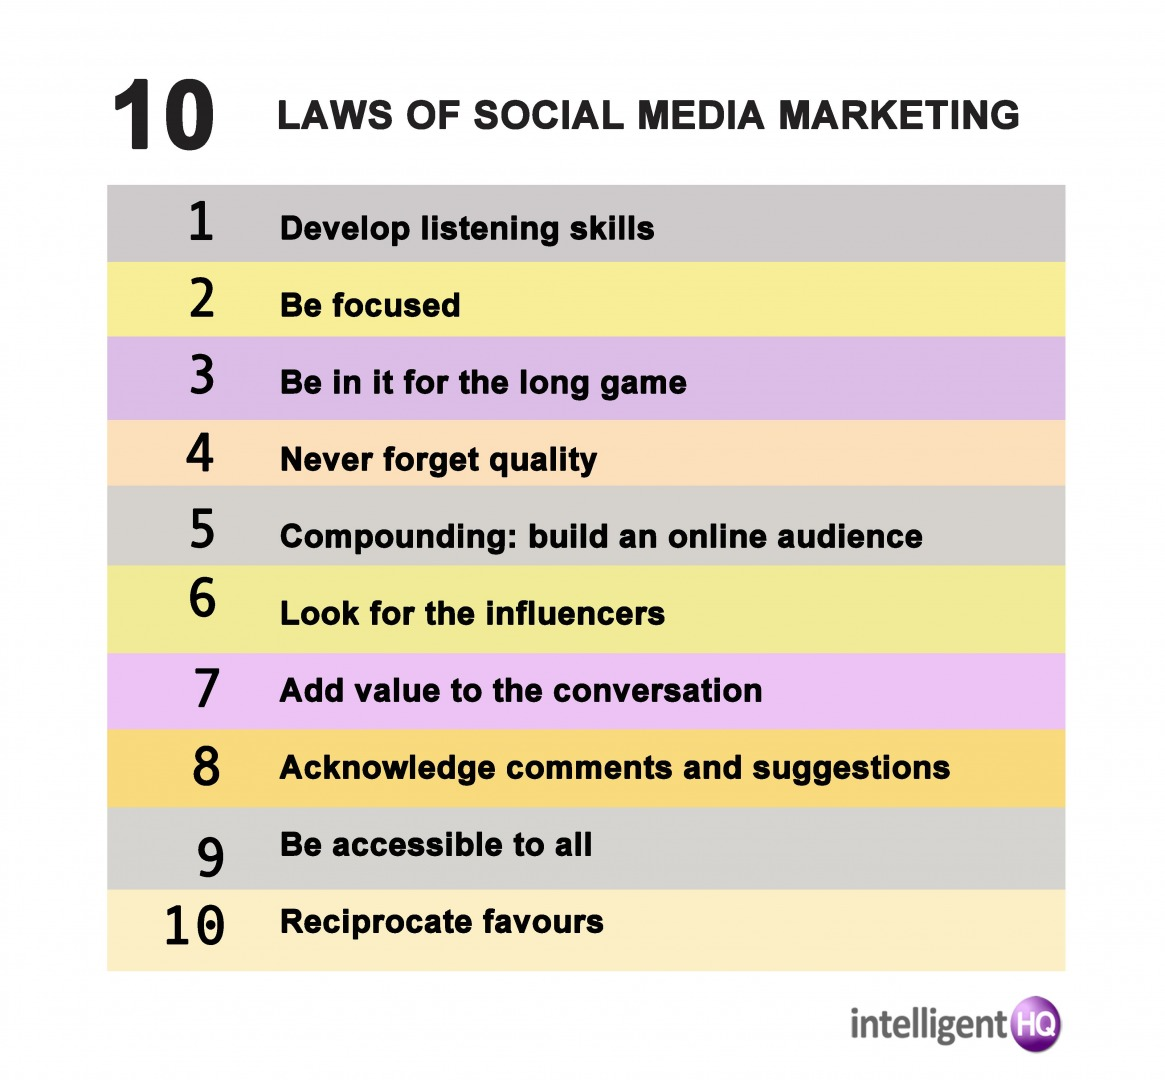 10 Laws of Social Media Marketing Infographic by Maria Fonseca